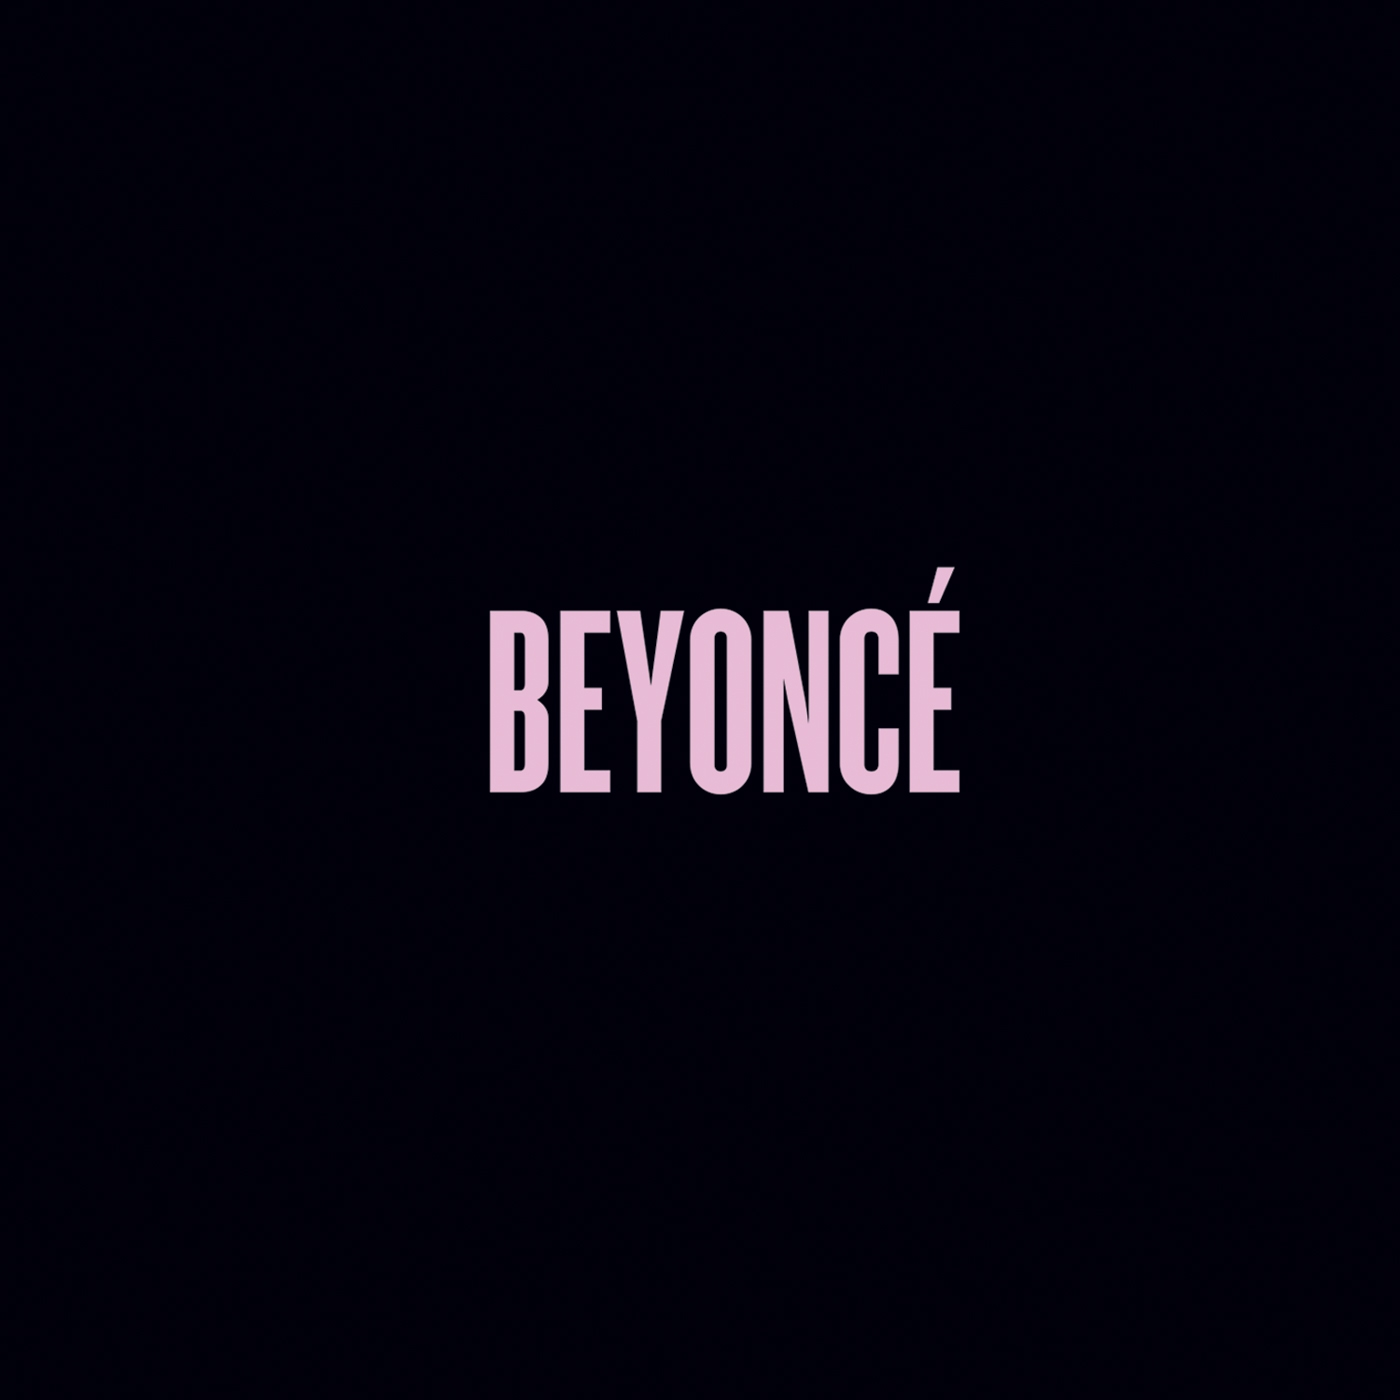 beyonce yonce cover art - photo #4